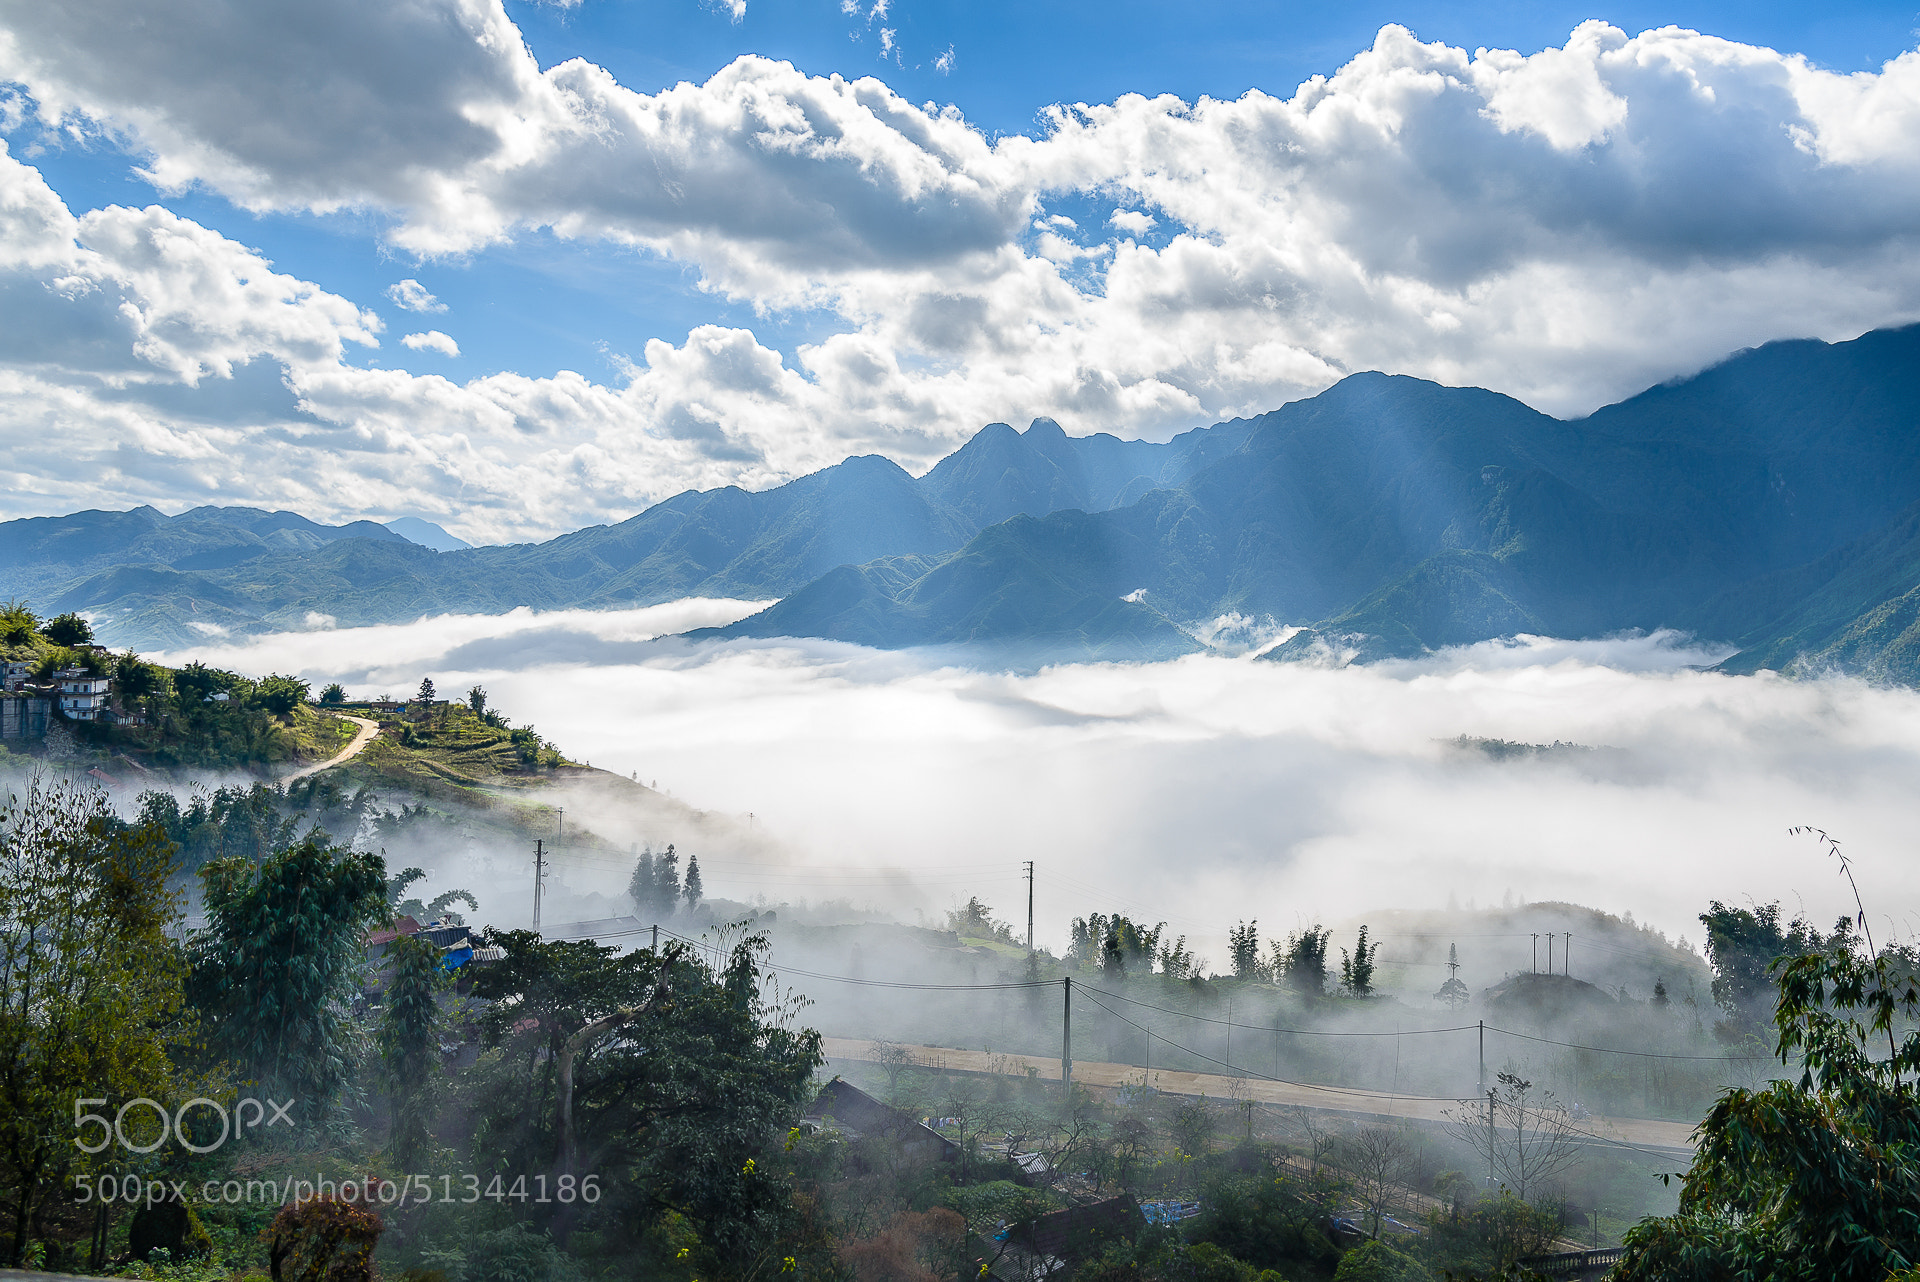 Photograph Foggy mountains by Michel Doyon on 500px